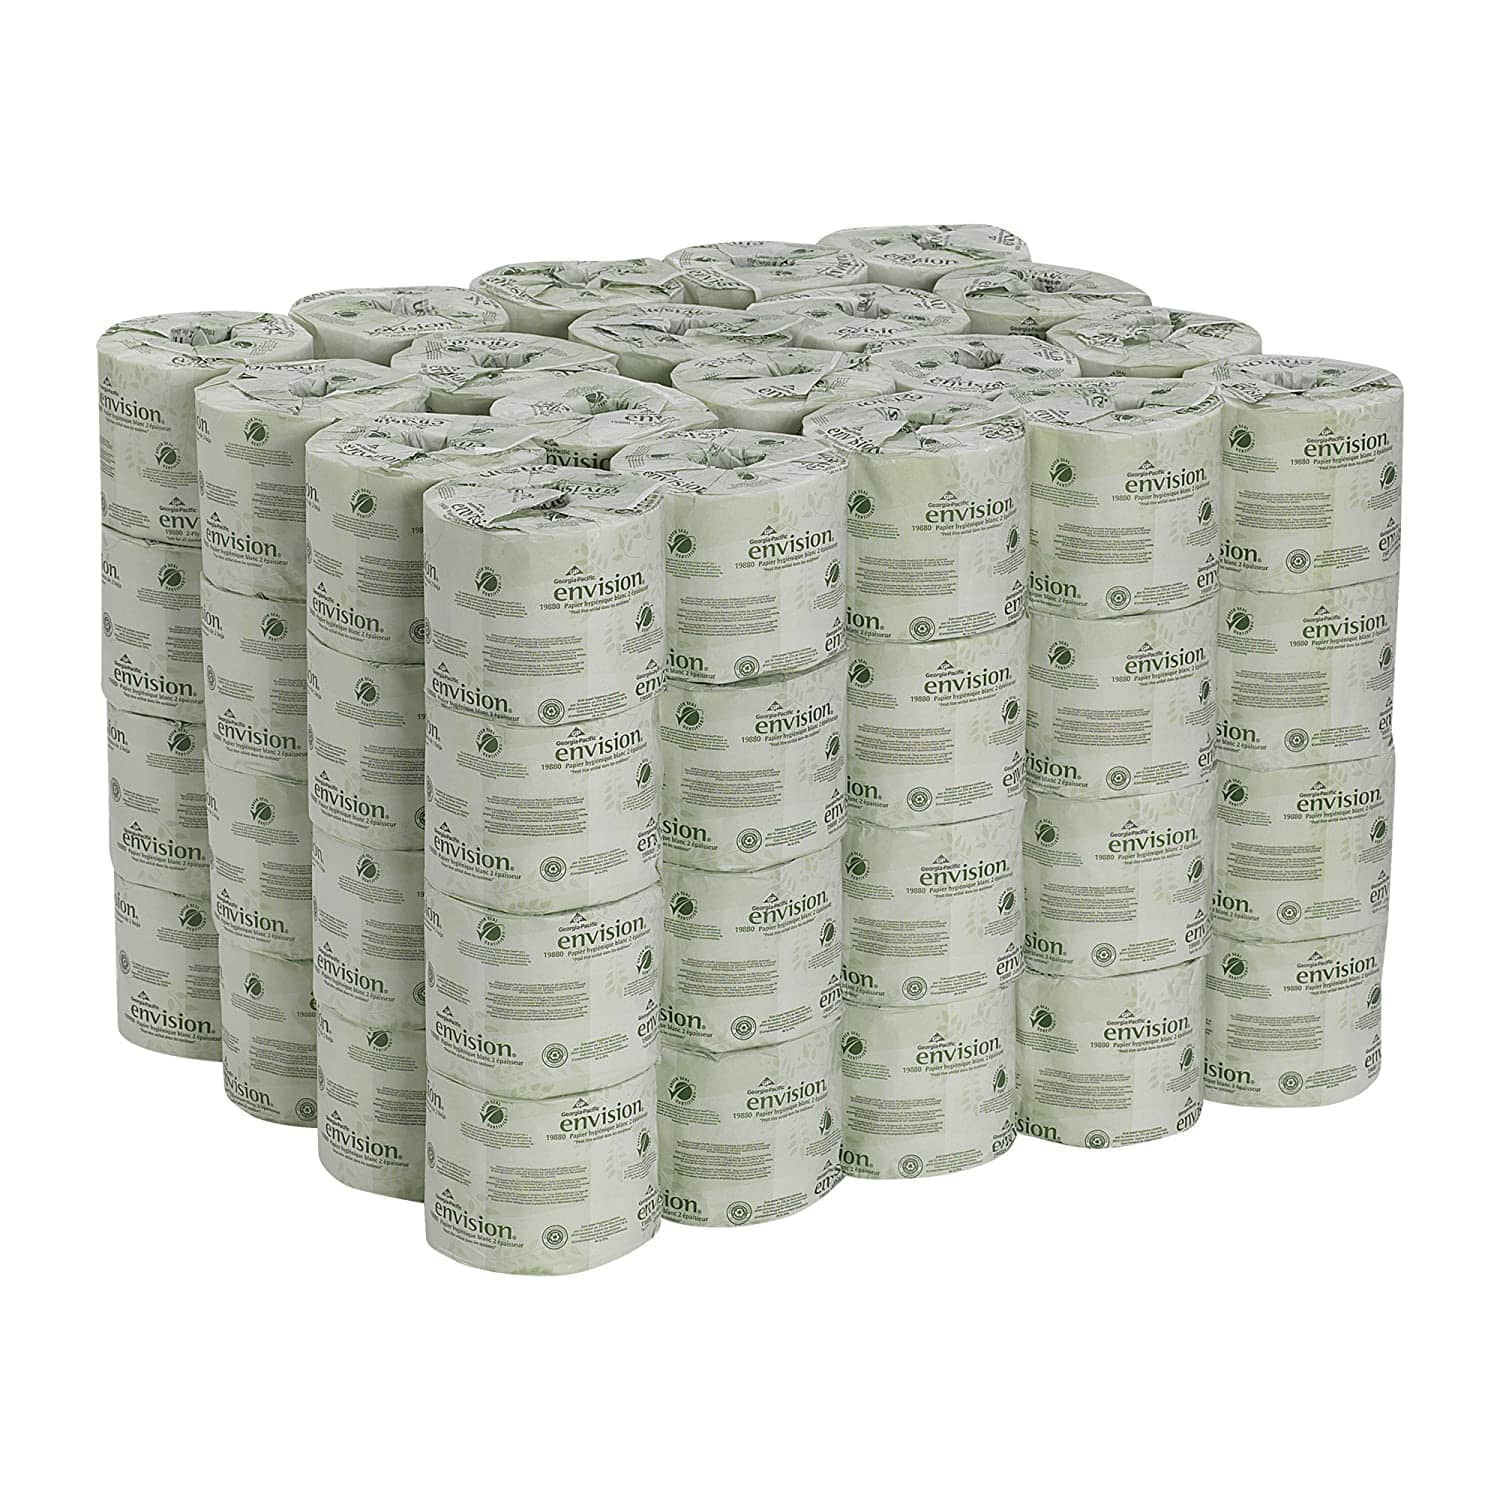 80 Rolls Georgia Pacific Envision 2 Ply Embossed Toilet Paper